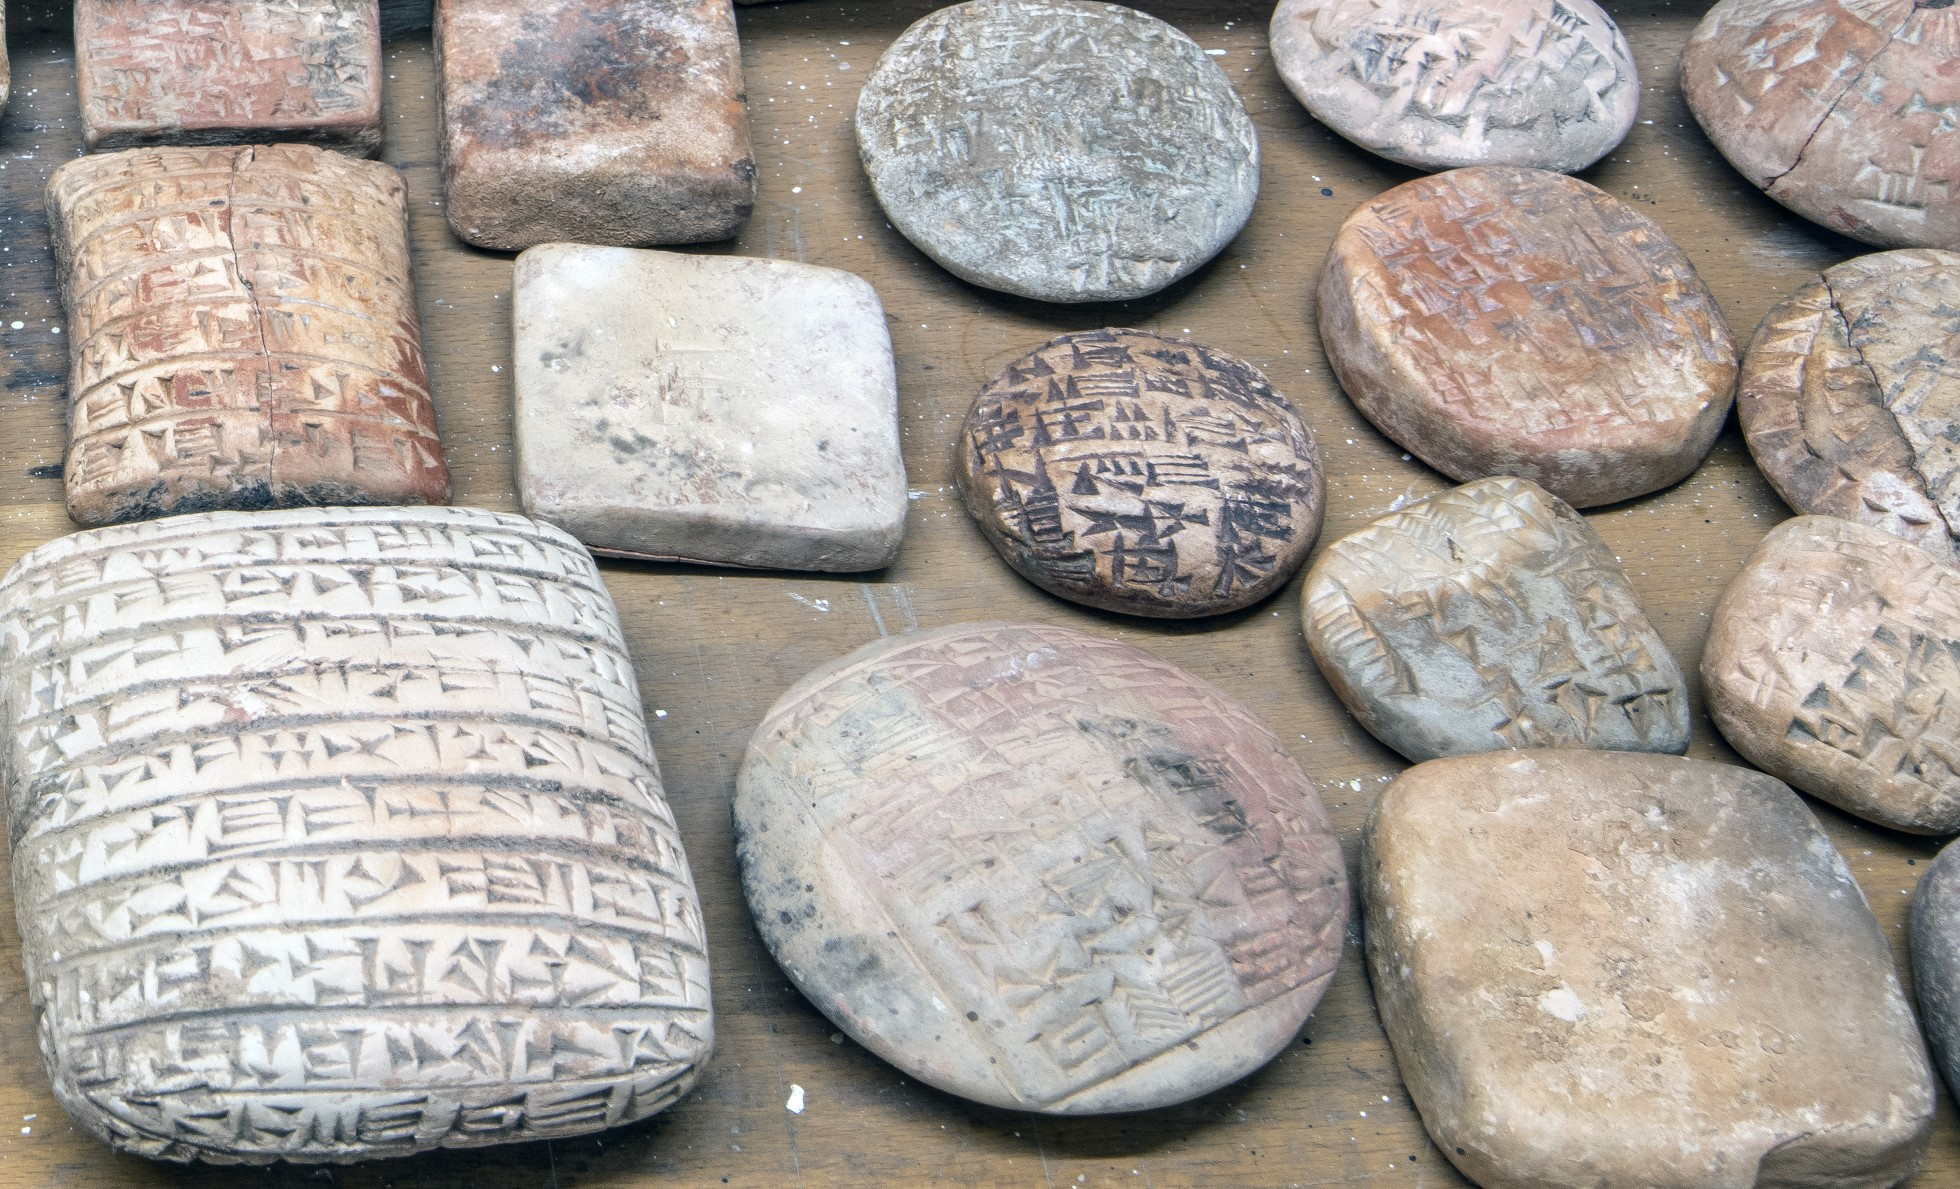 Fake cuneiform tablets unwrapped for assessment